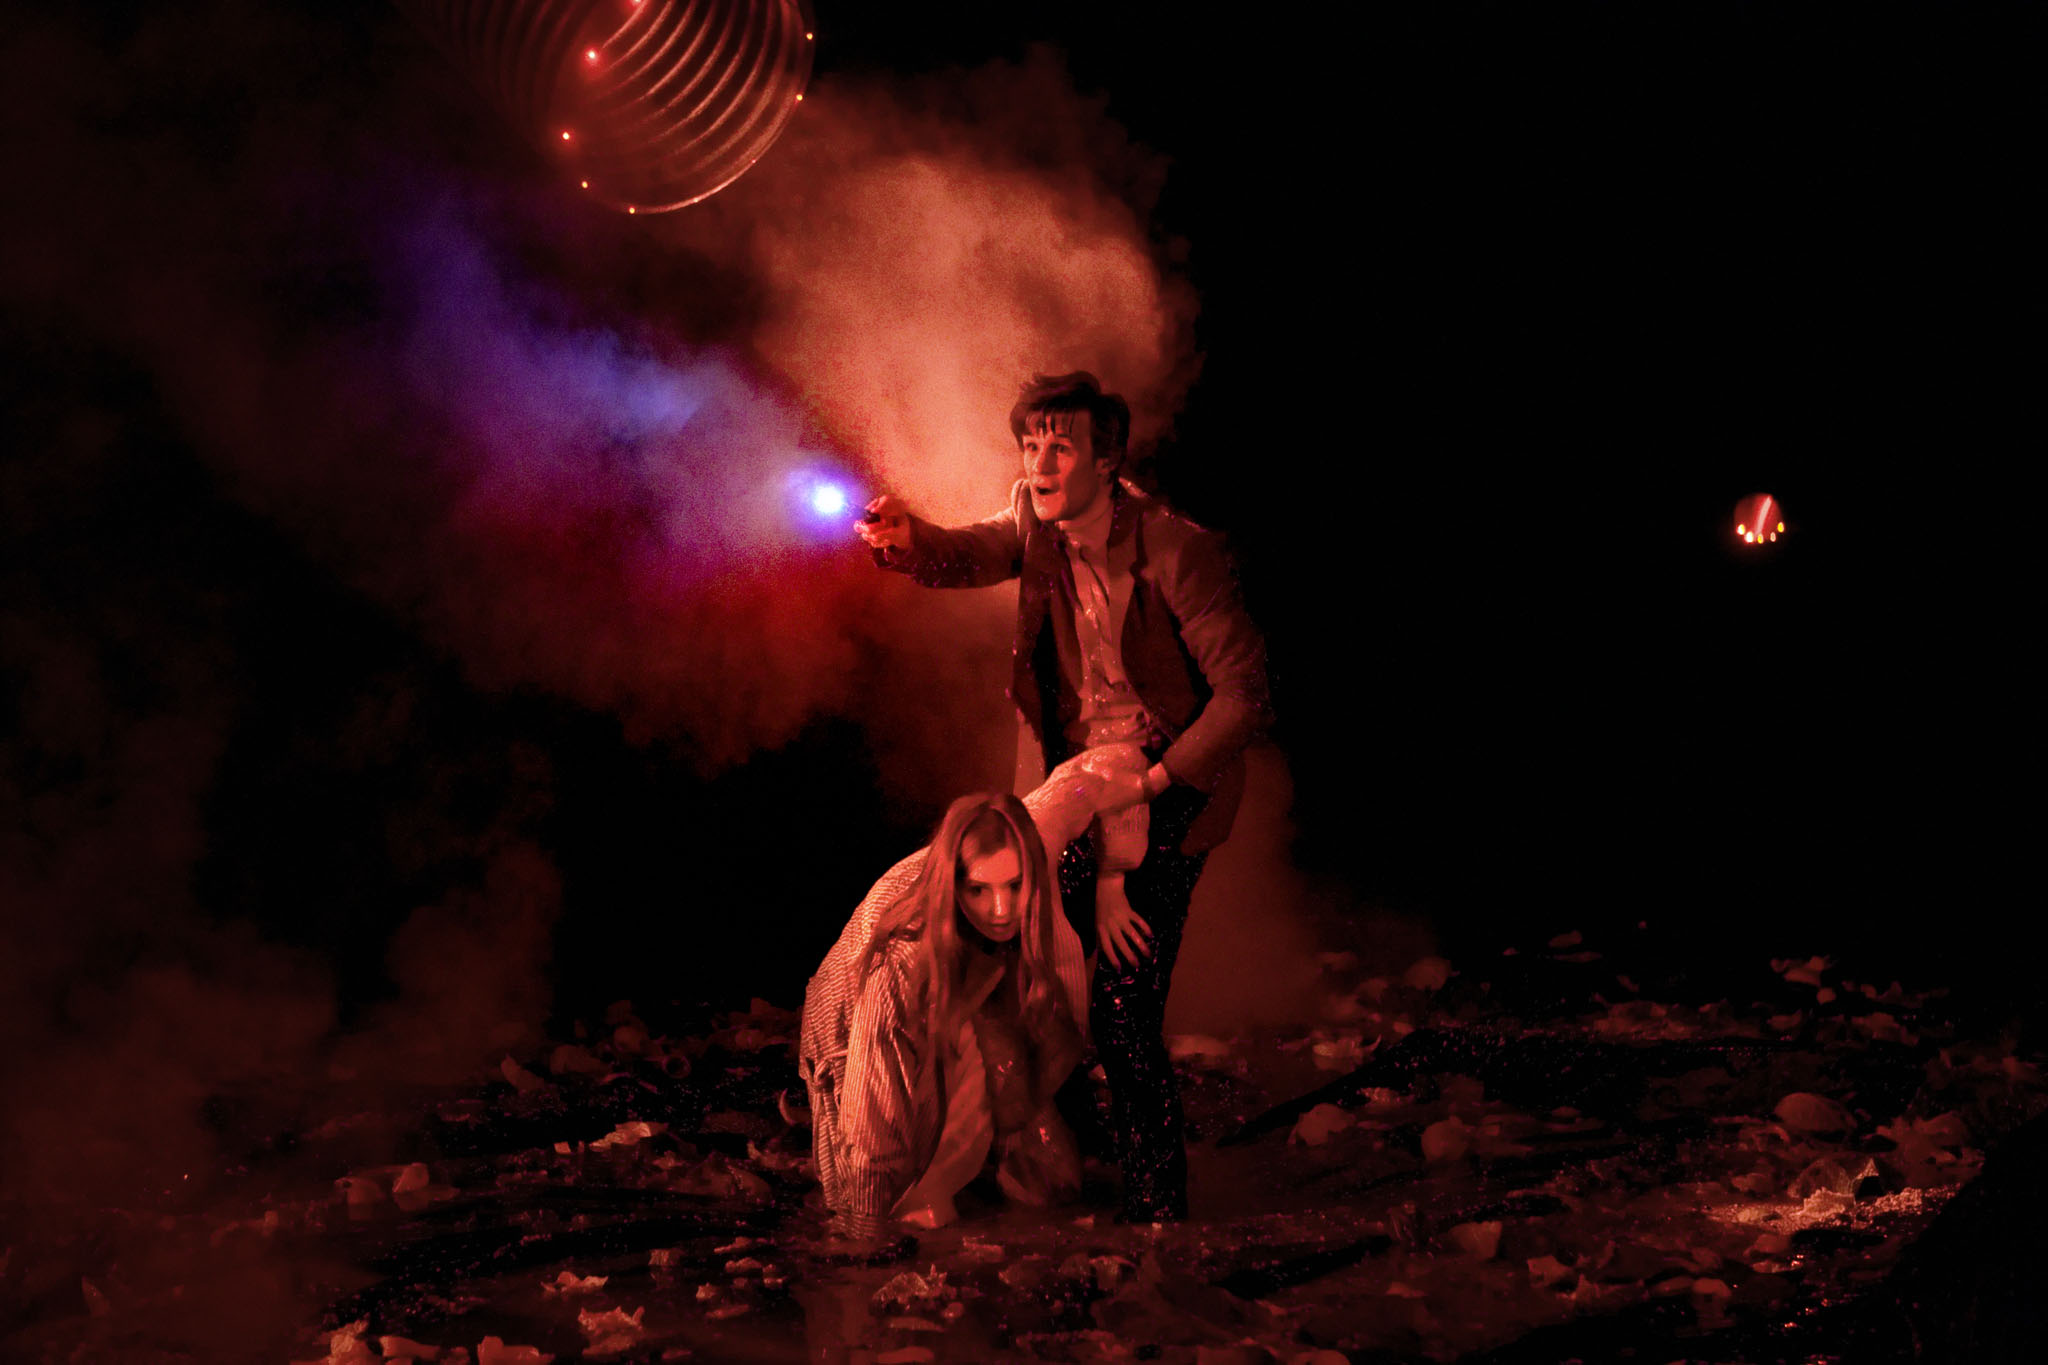 Doctor Who Tv Series 5 Story 204 The Beast Below Episode 2